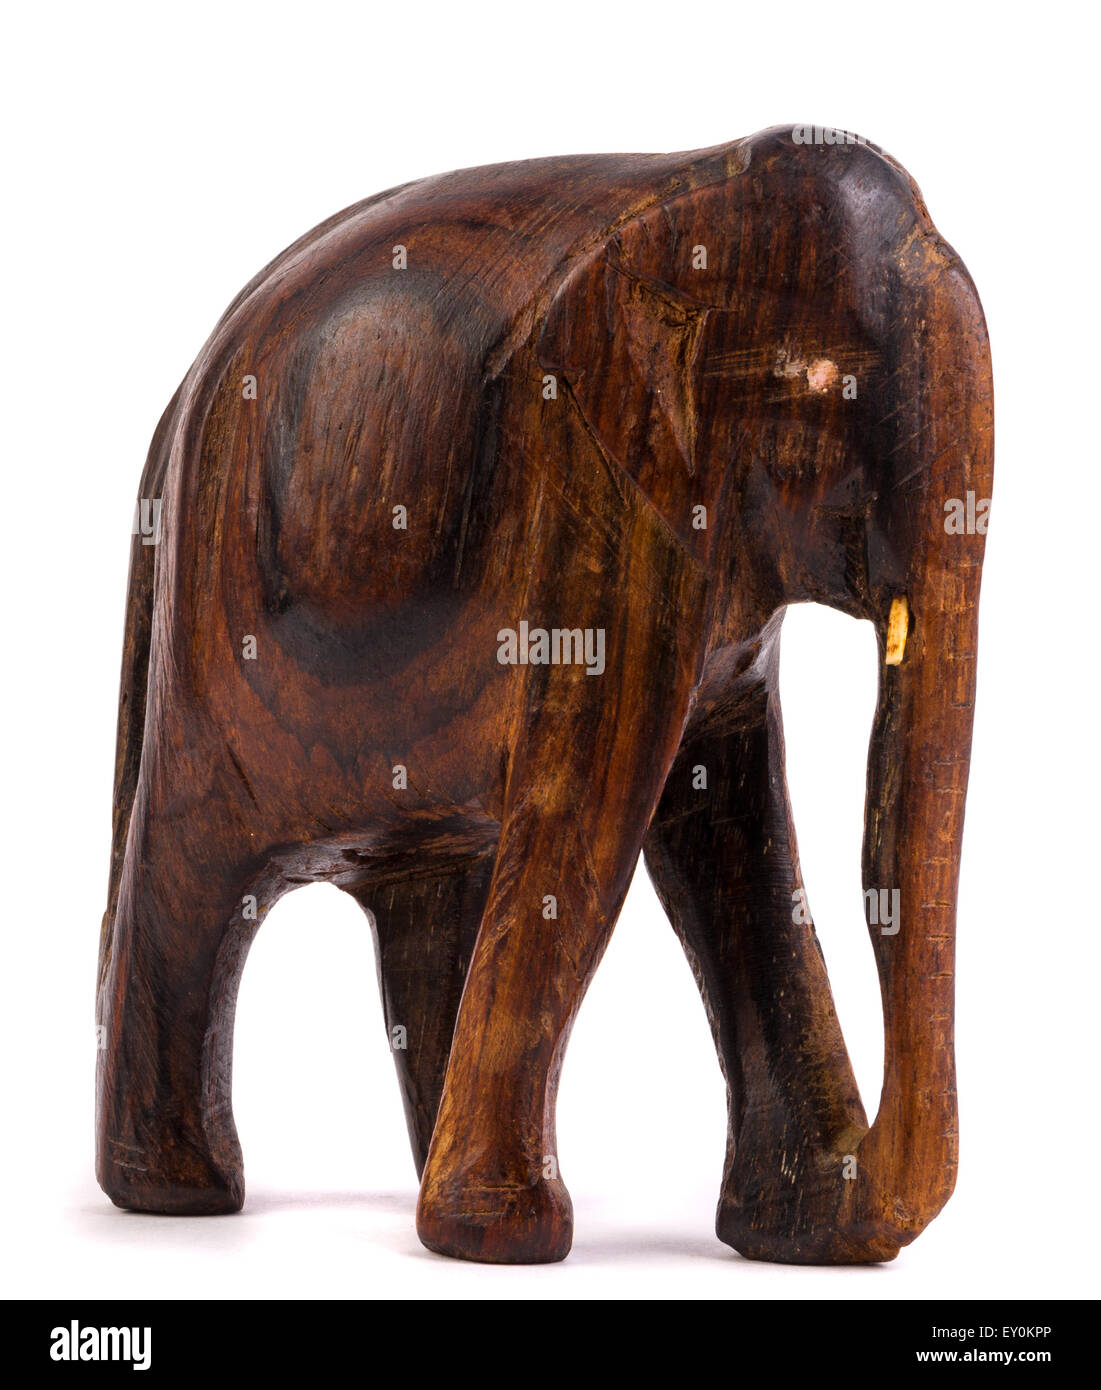 Wooden Elephants Figurines Wooden Elephant Figurine From Thailand Stock Photo